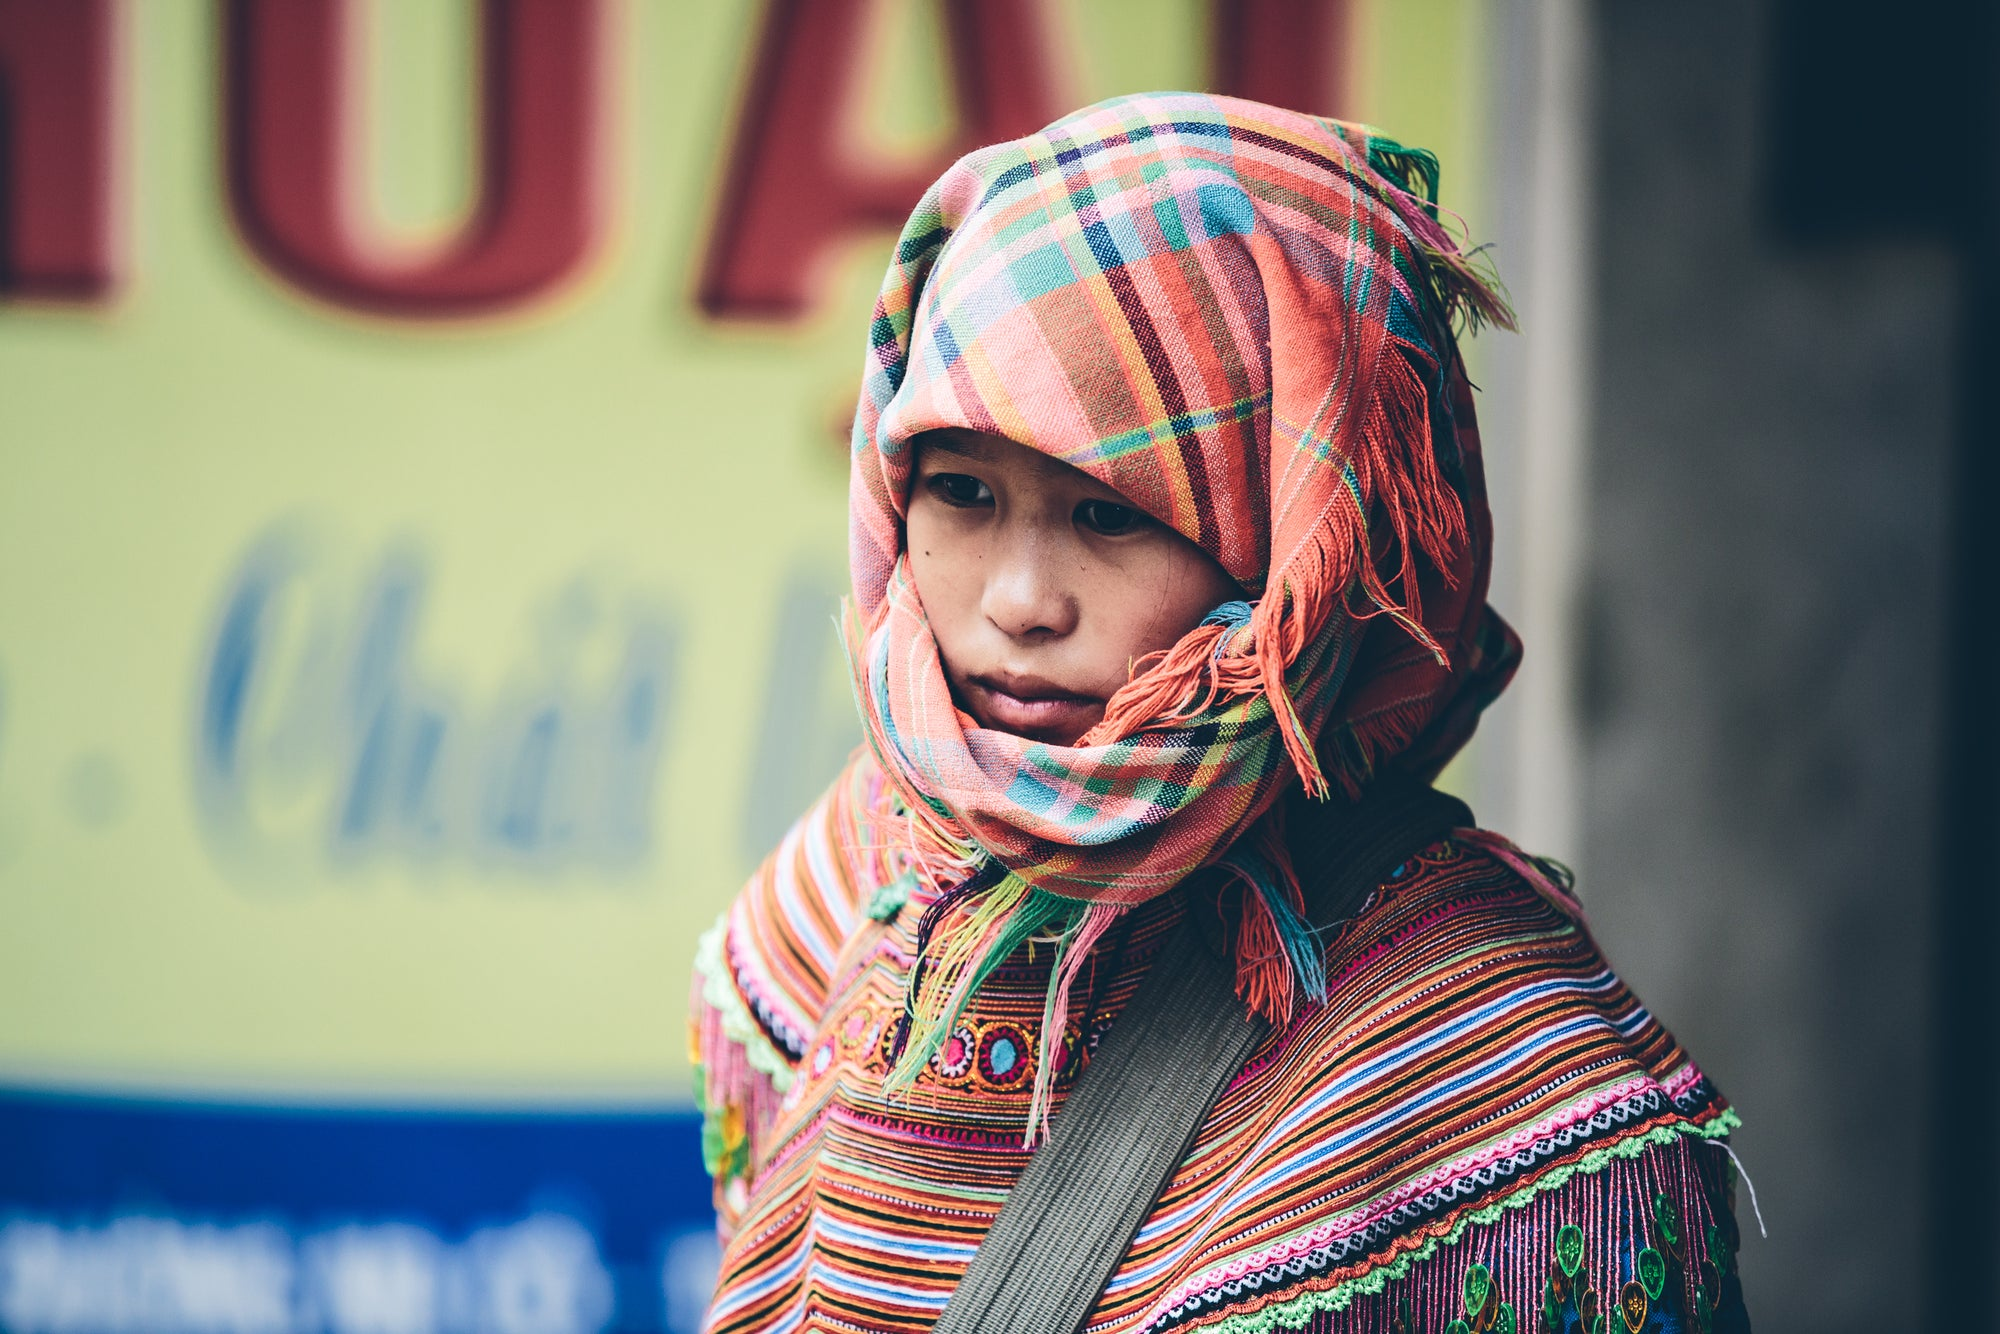 GIRL WITH HEAD SCARF